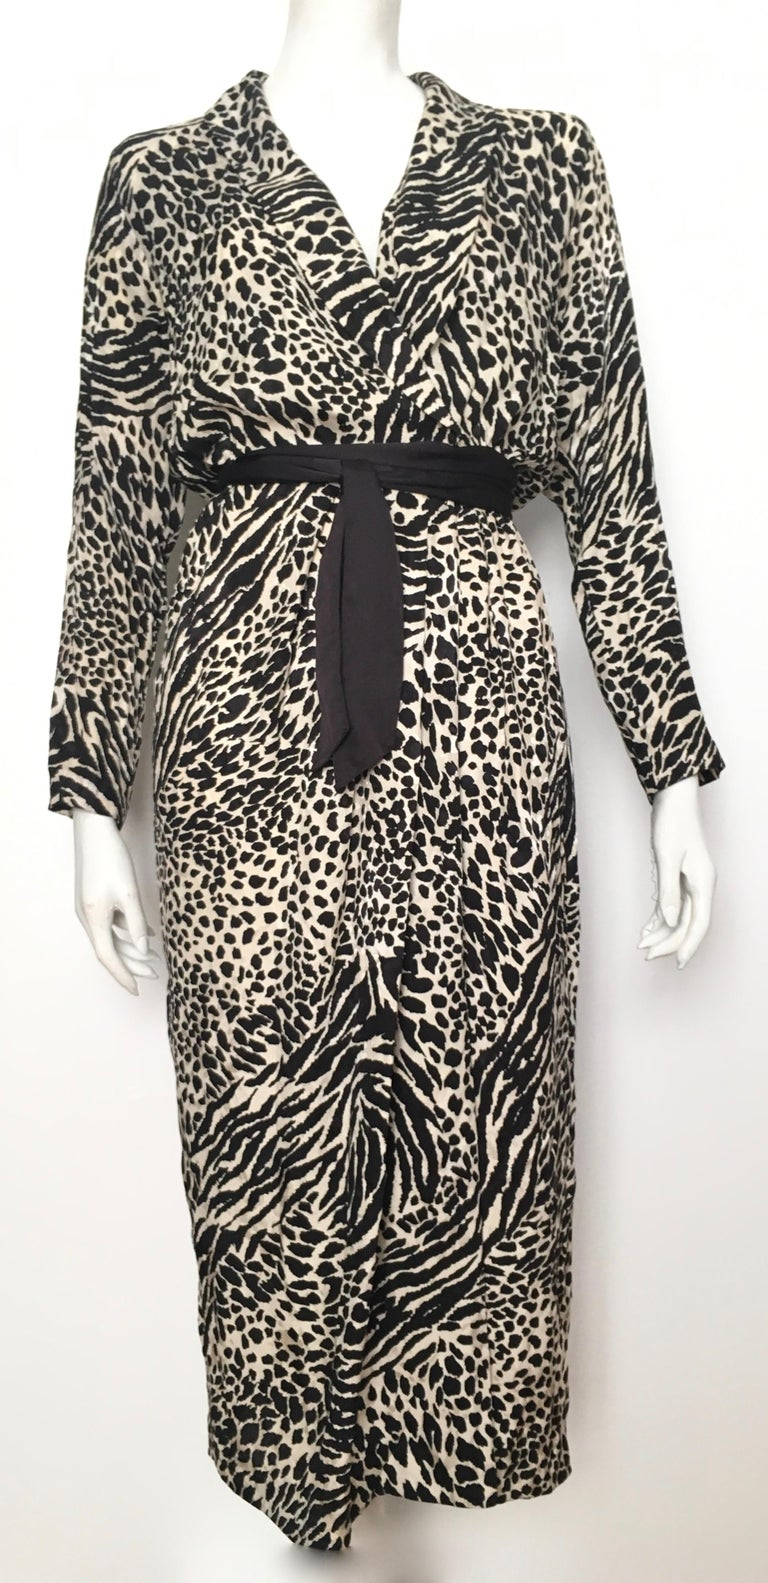 Geoffrey Beene for Lillie Rubin 1980 Animal Print Silk Dress Size 6. For Sale 4